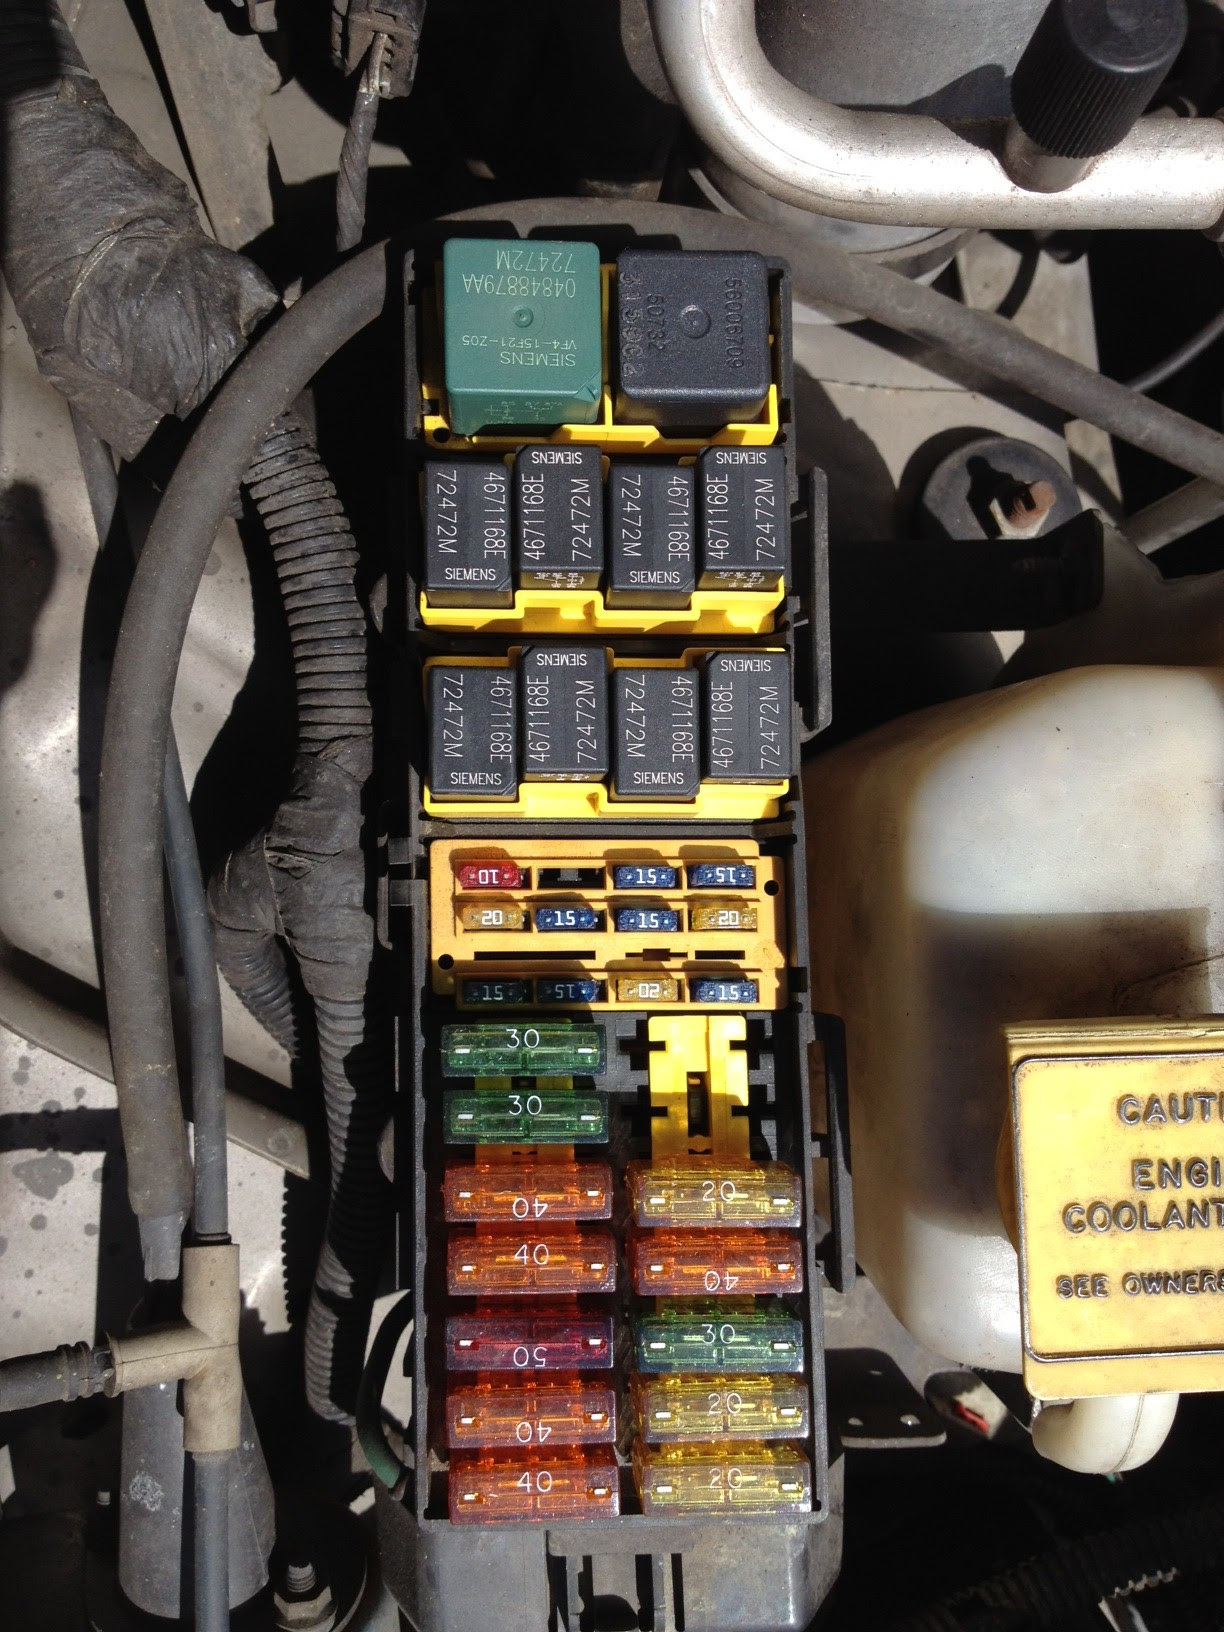 Jeep Cherokee Electrical 1997 2001 Xj Fuse Relay Identification Reference Guide To The Fuses Ratings Amps Relays And Circuit Information